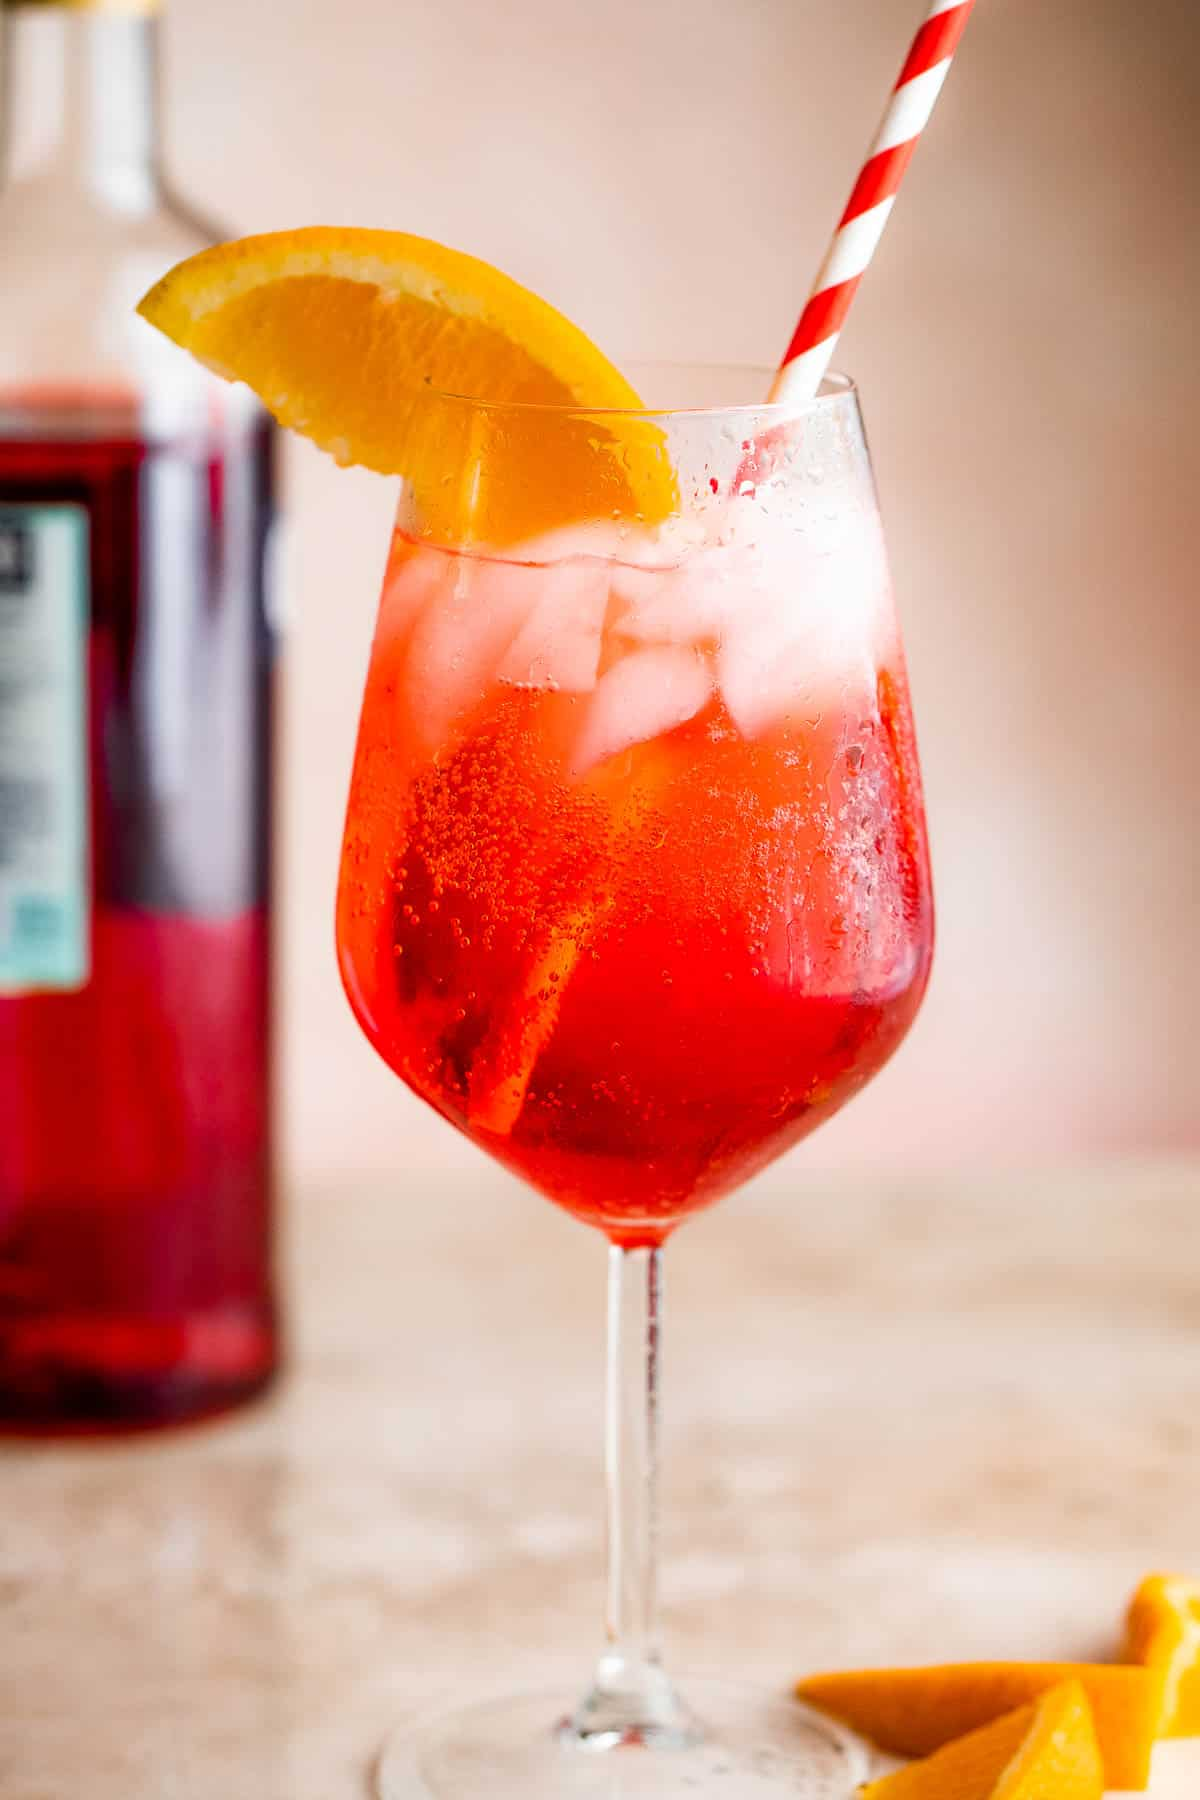 Campari Spritz in a tall stemmed glass served with a slice of orange on the rim and red and white straw